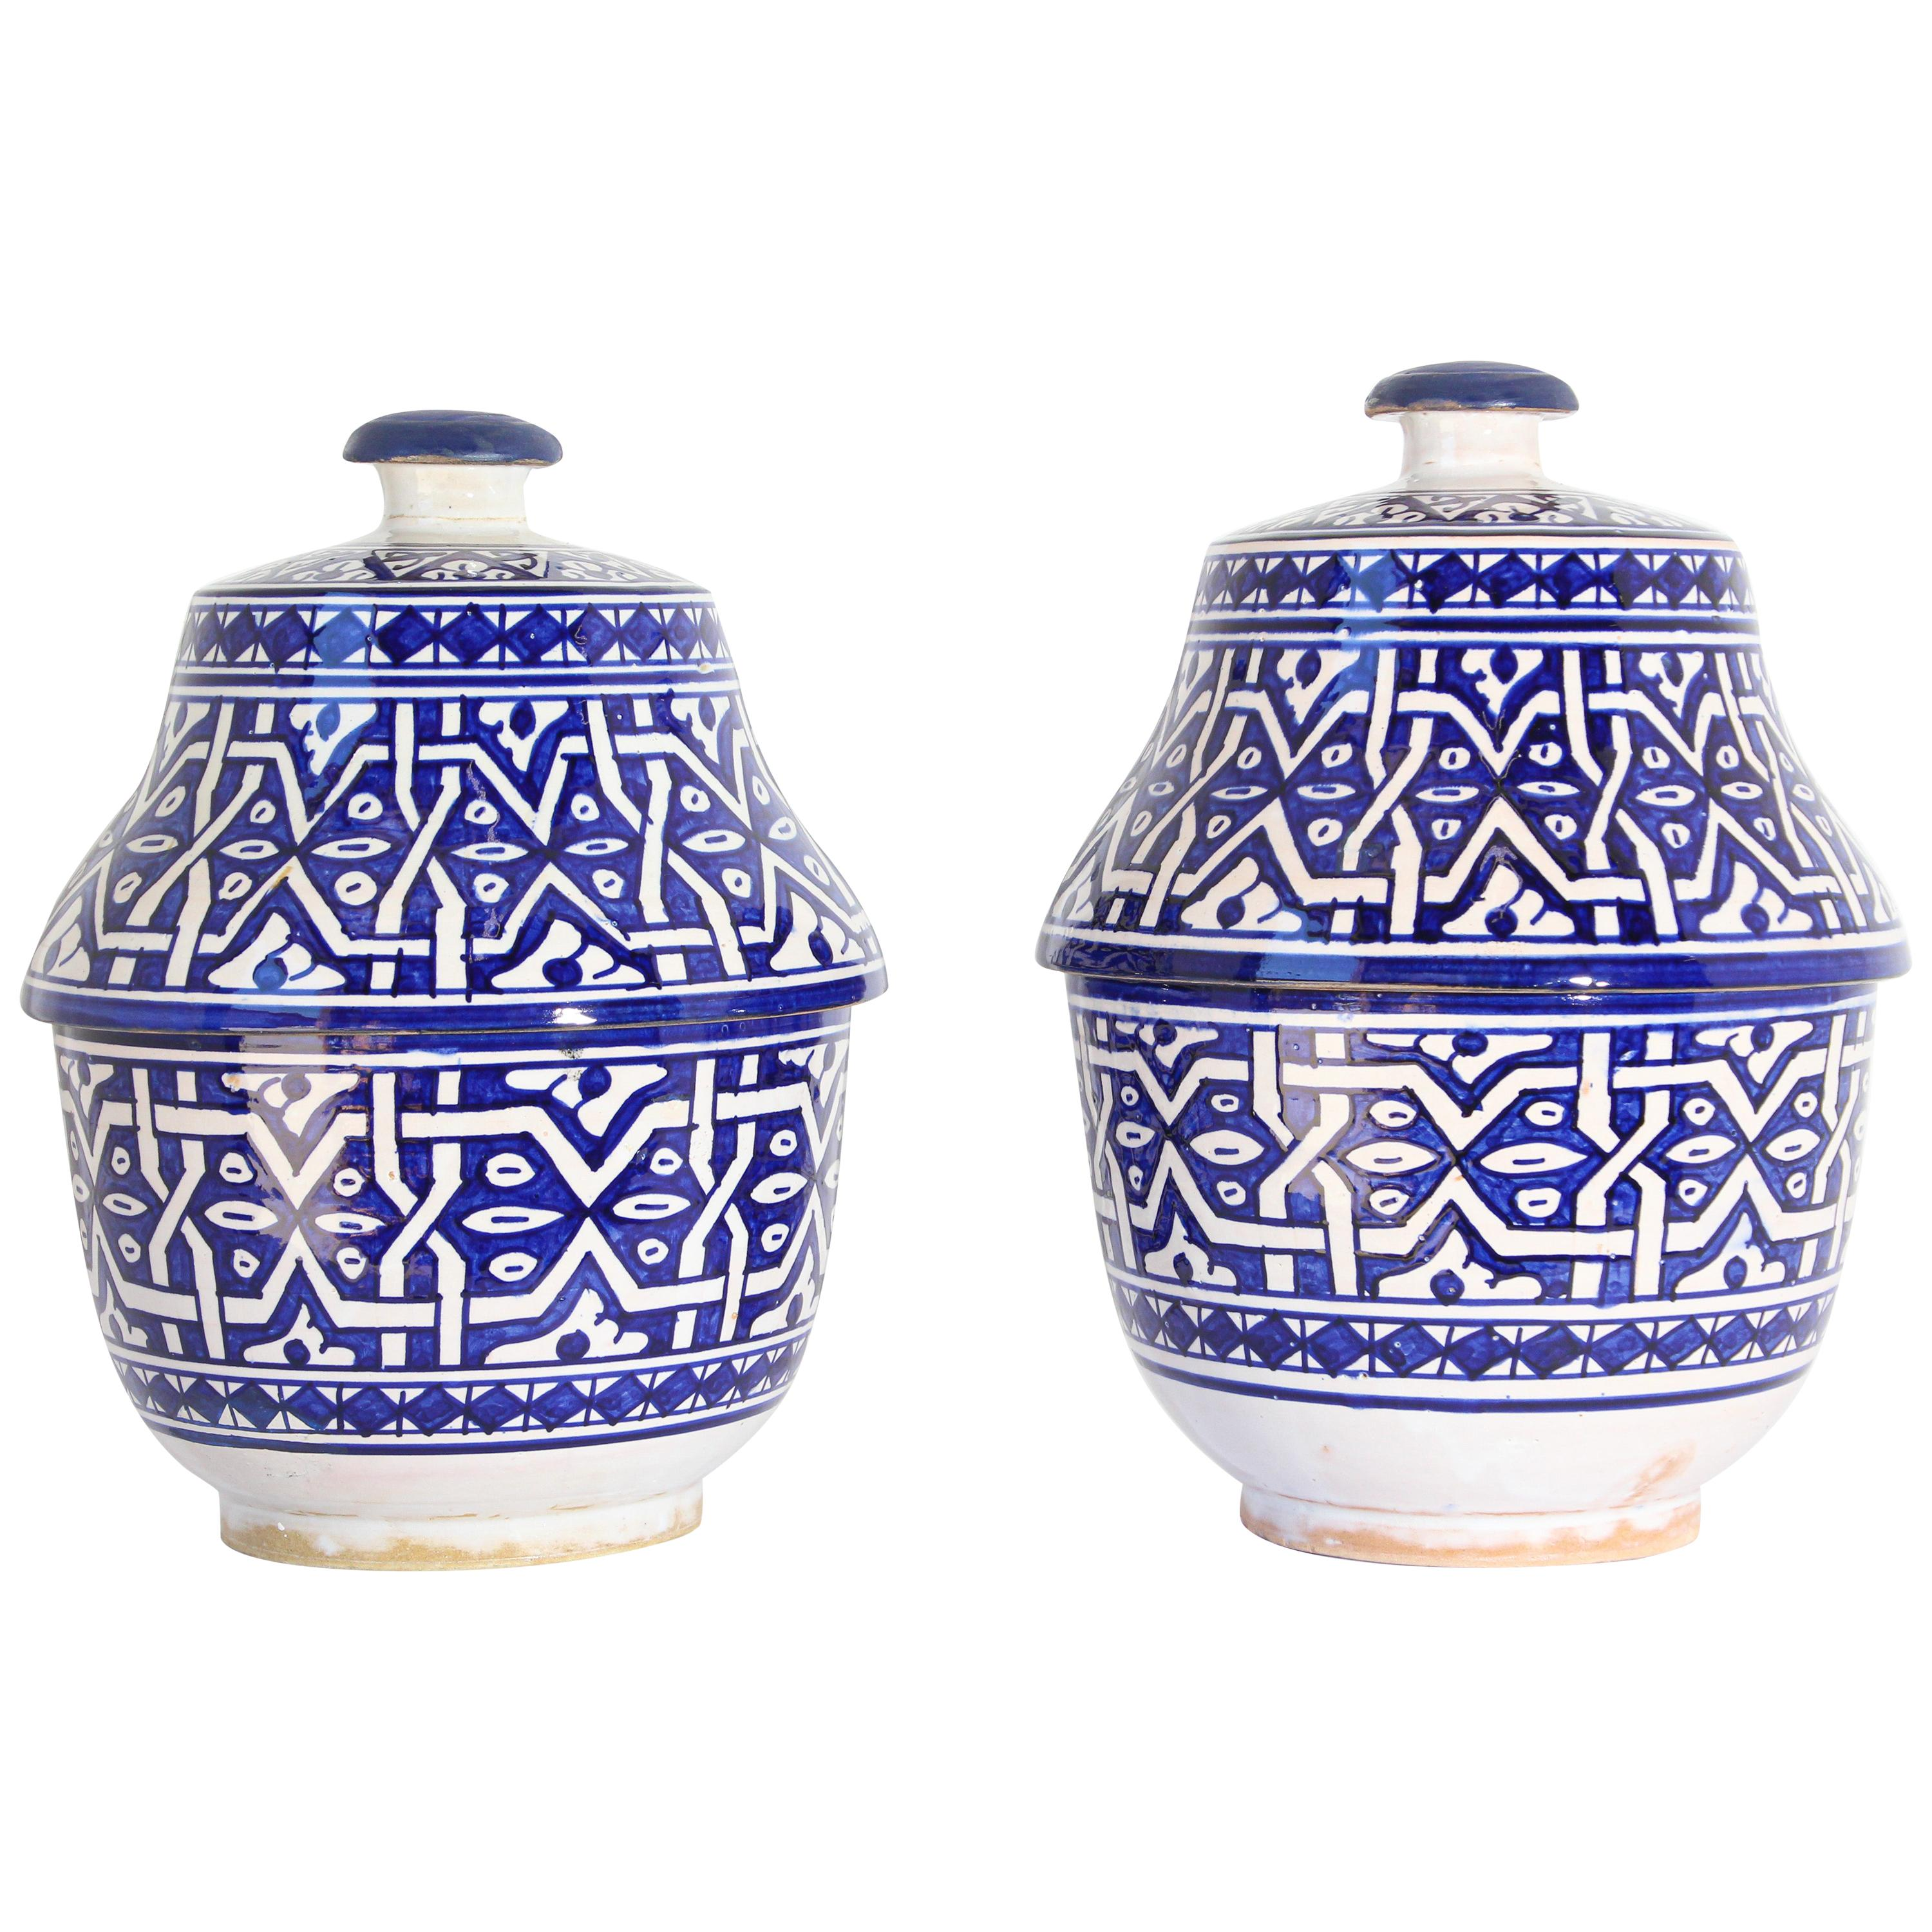 Glazed Royal Blue Covered Jars Handcrafted in Fez Morocco